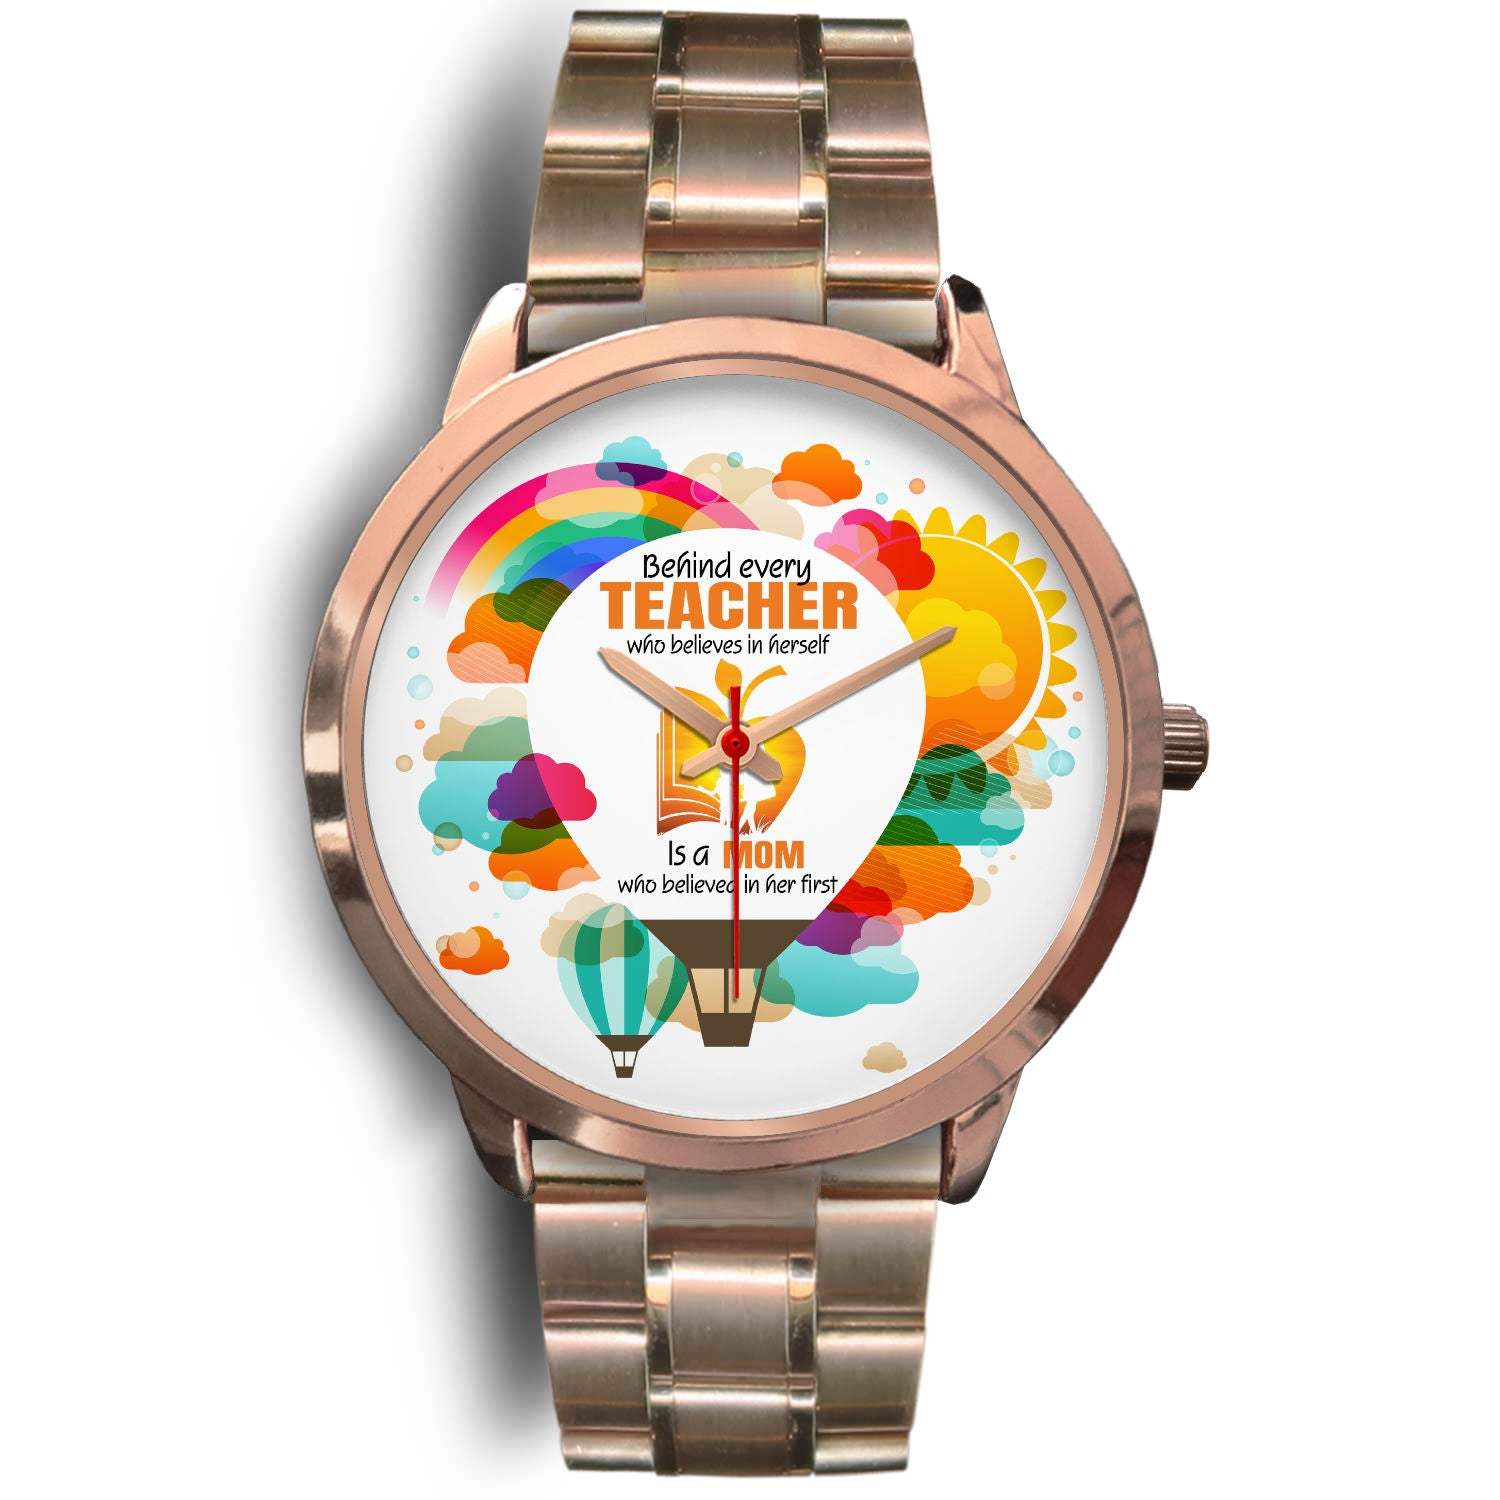 VIRA Rose gold stainless steel watch for awesome teachers & moms